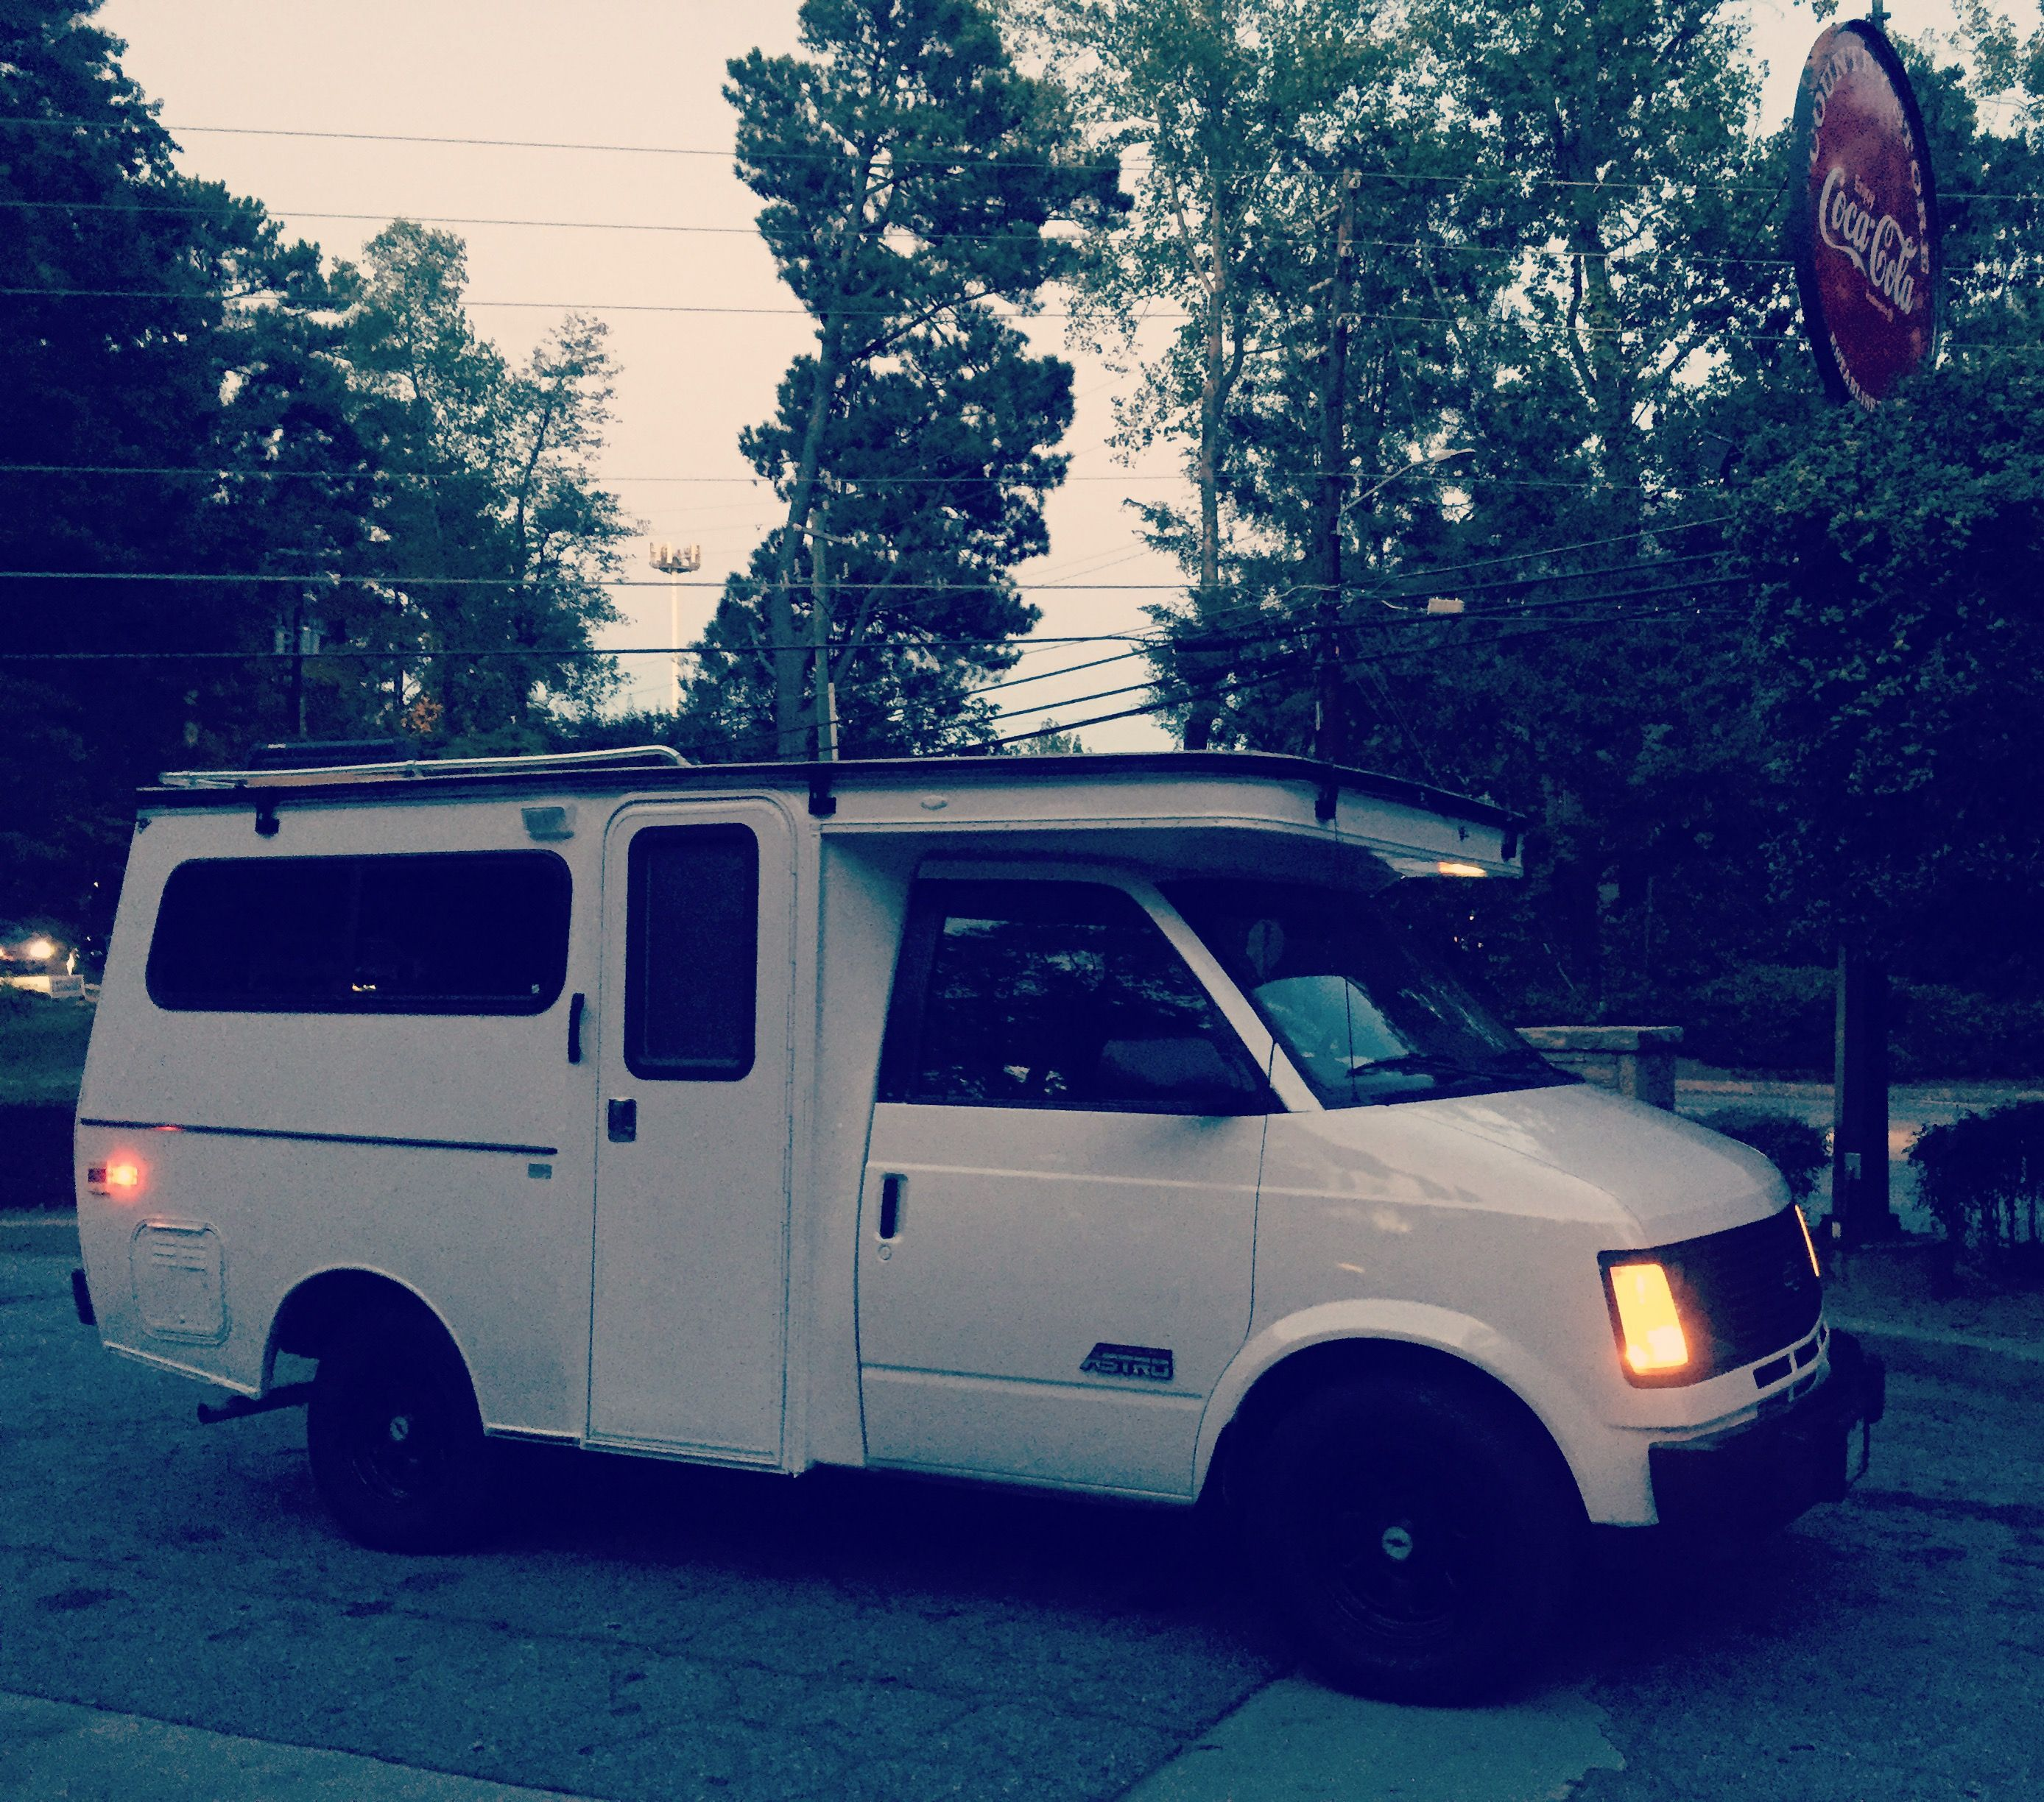 hight resolution of 1992 chevy astro tiger gt provan awd rv camper van full kitchen heat bath shower in 16 ft of space compare to sportsmobiles and sprinter 4x4 vans but